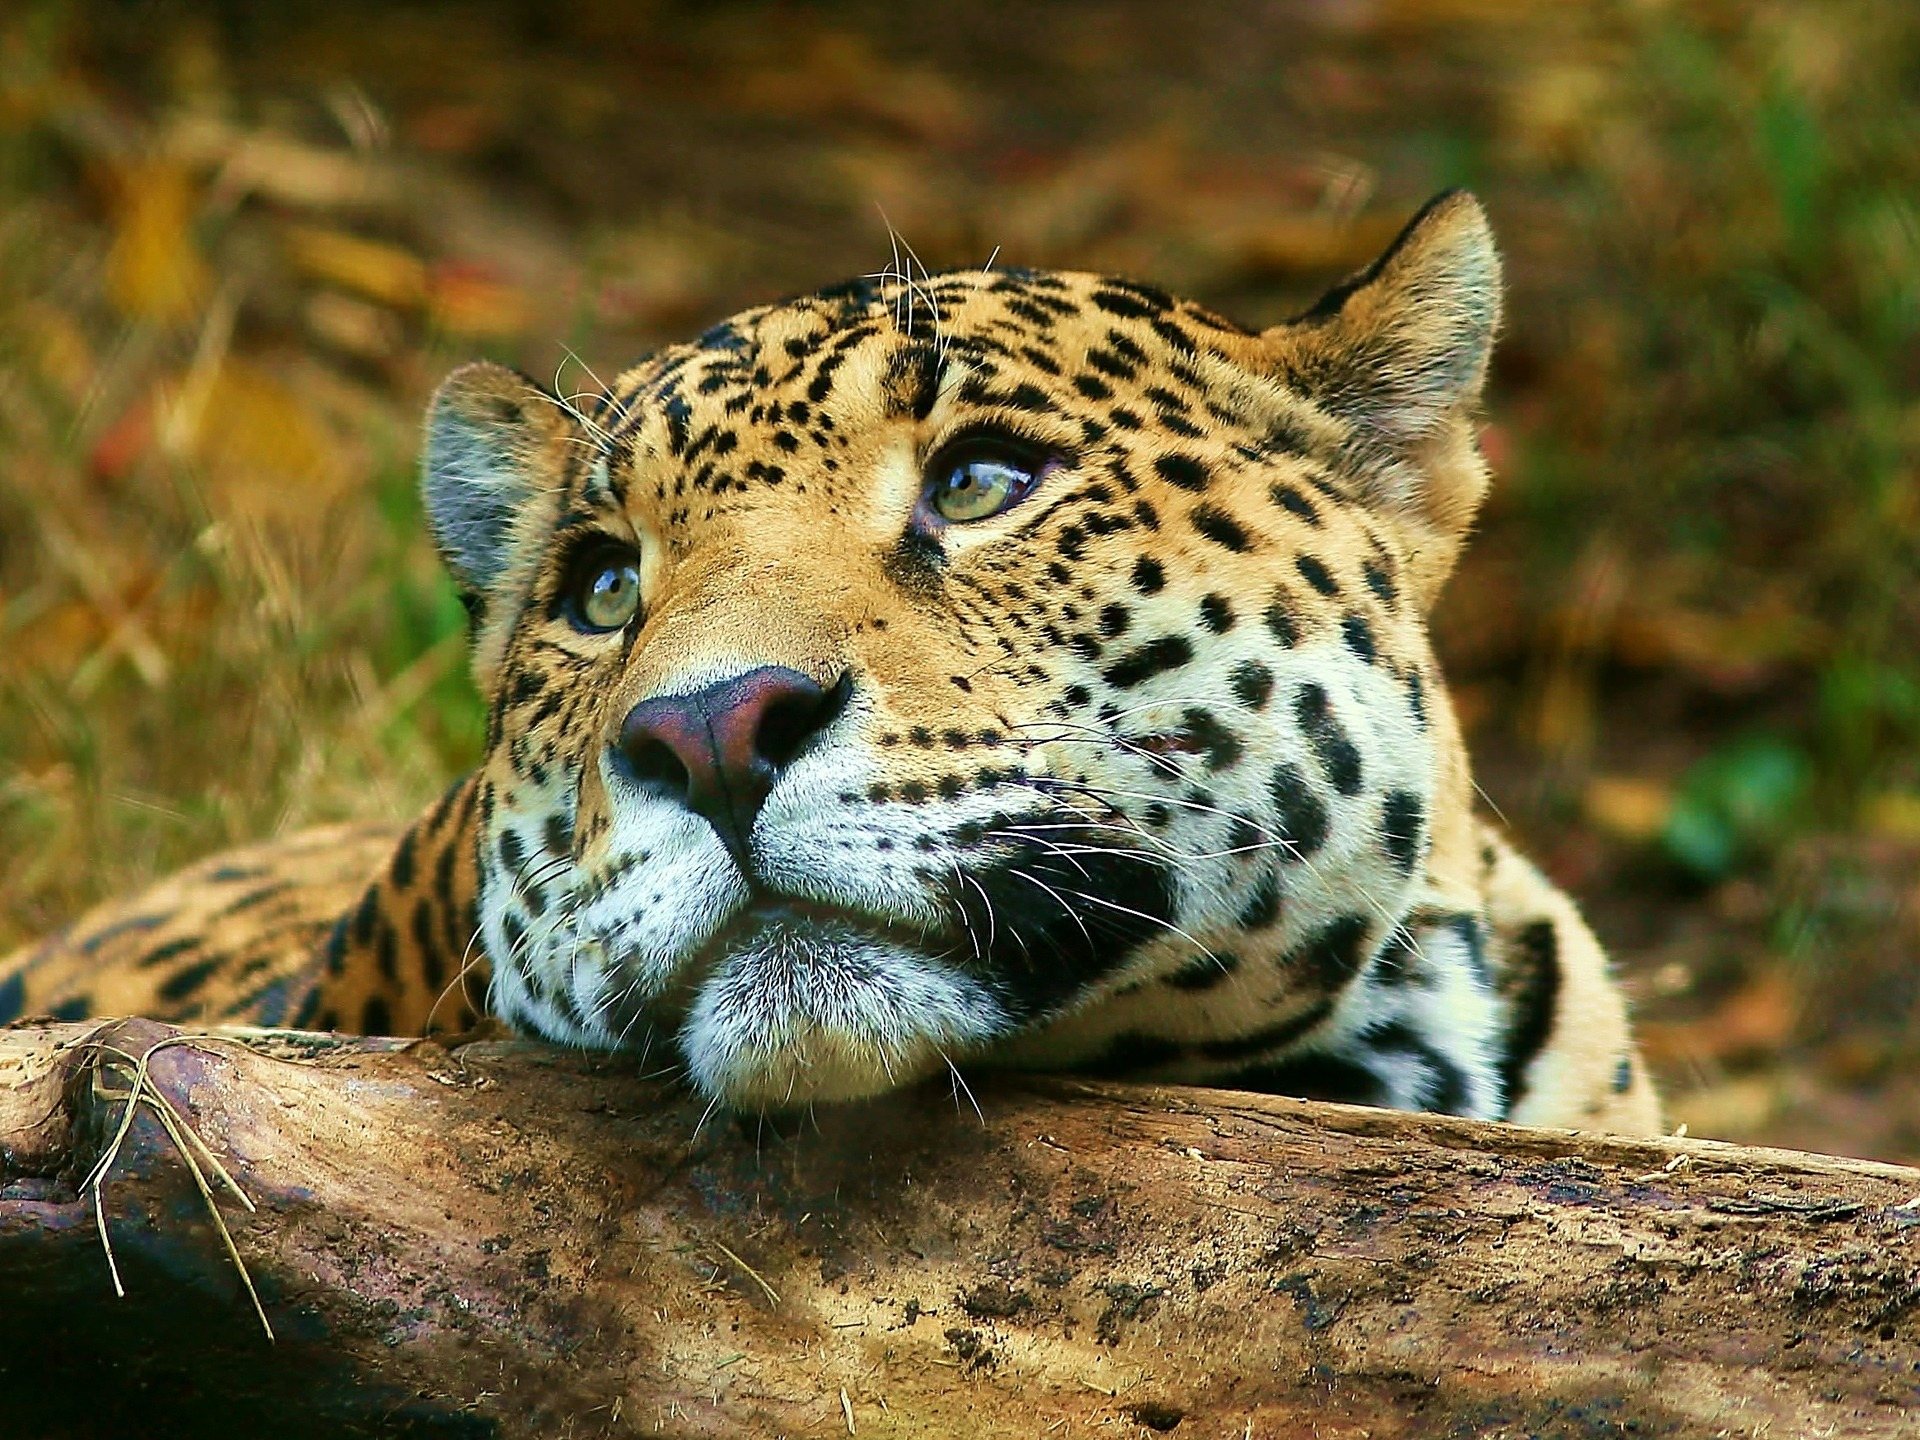 leopard daydreaming wallpaper big cats animals wallpapers in jpg